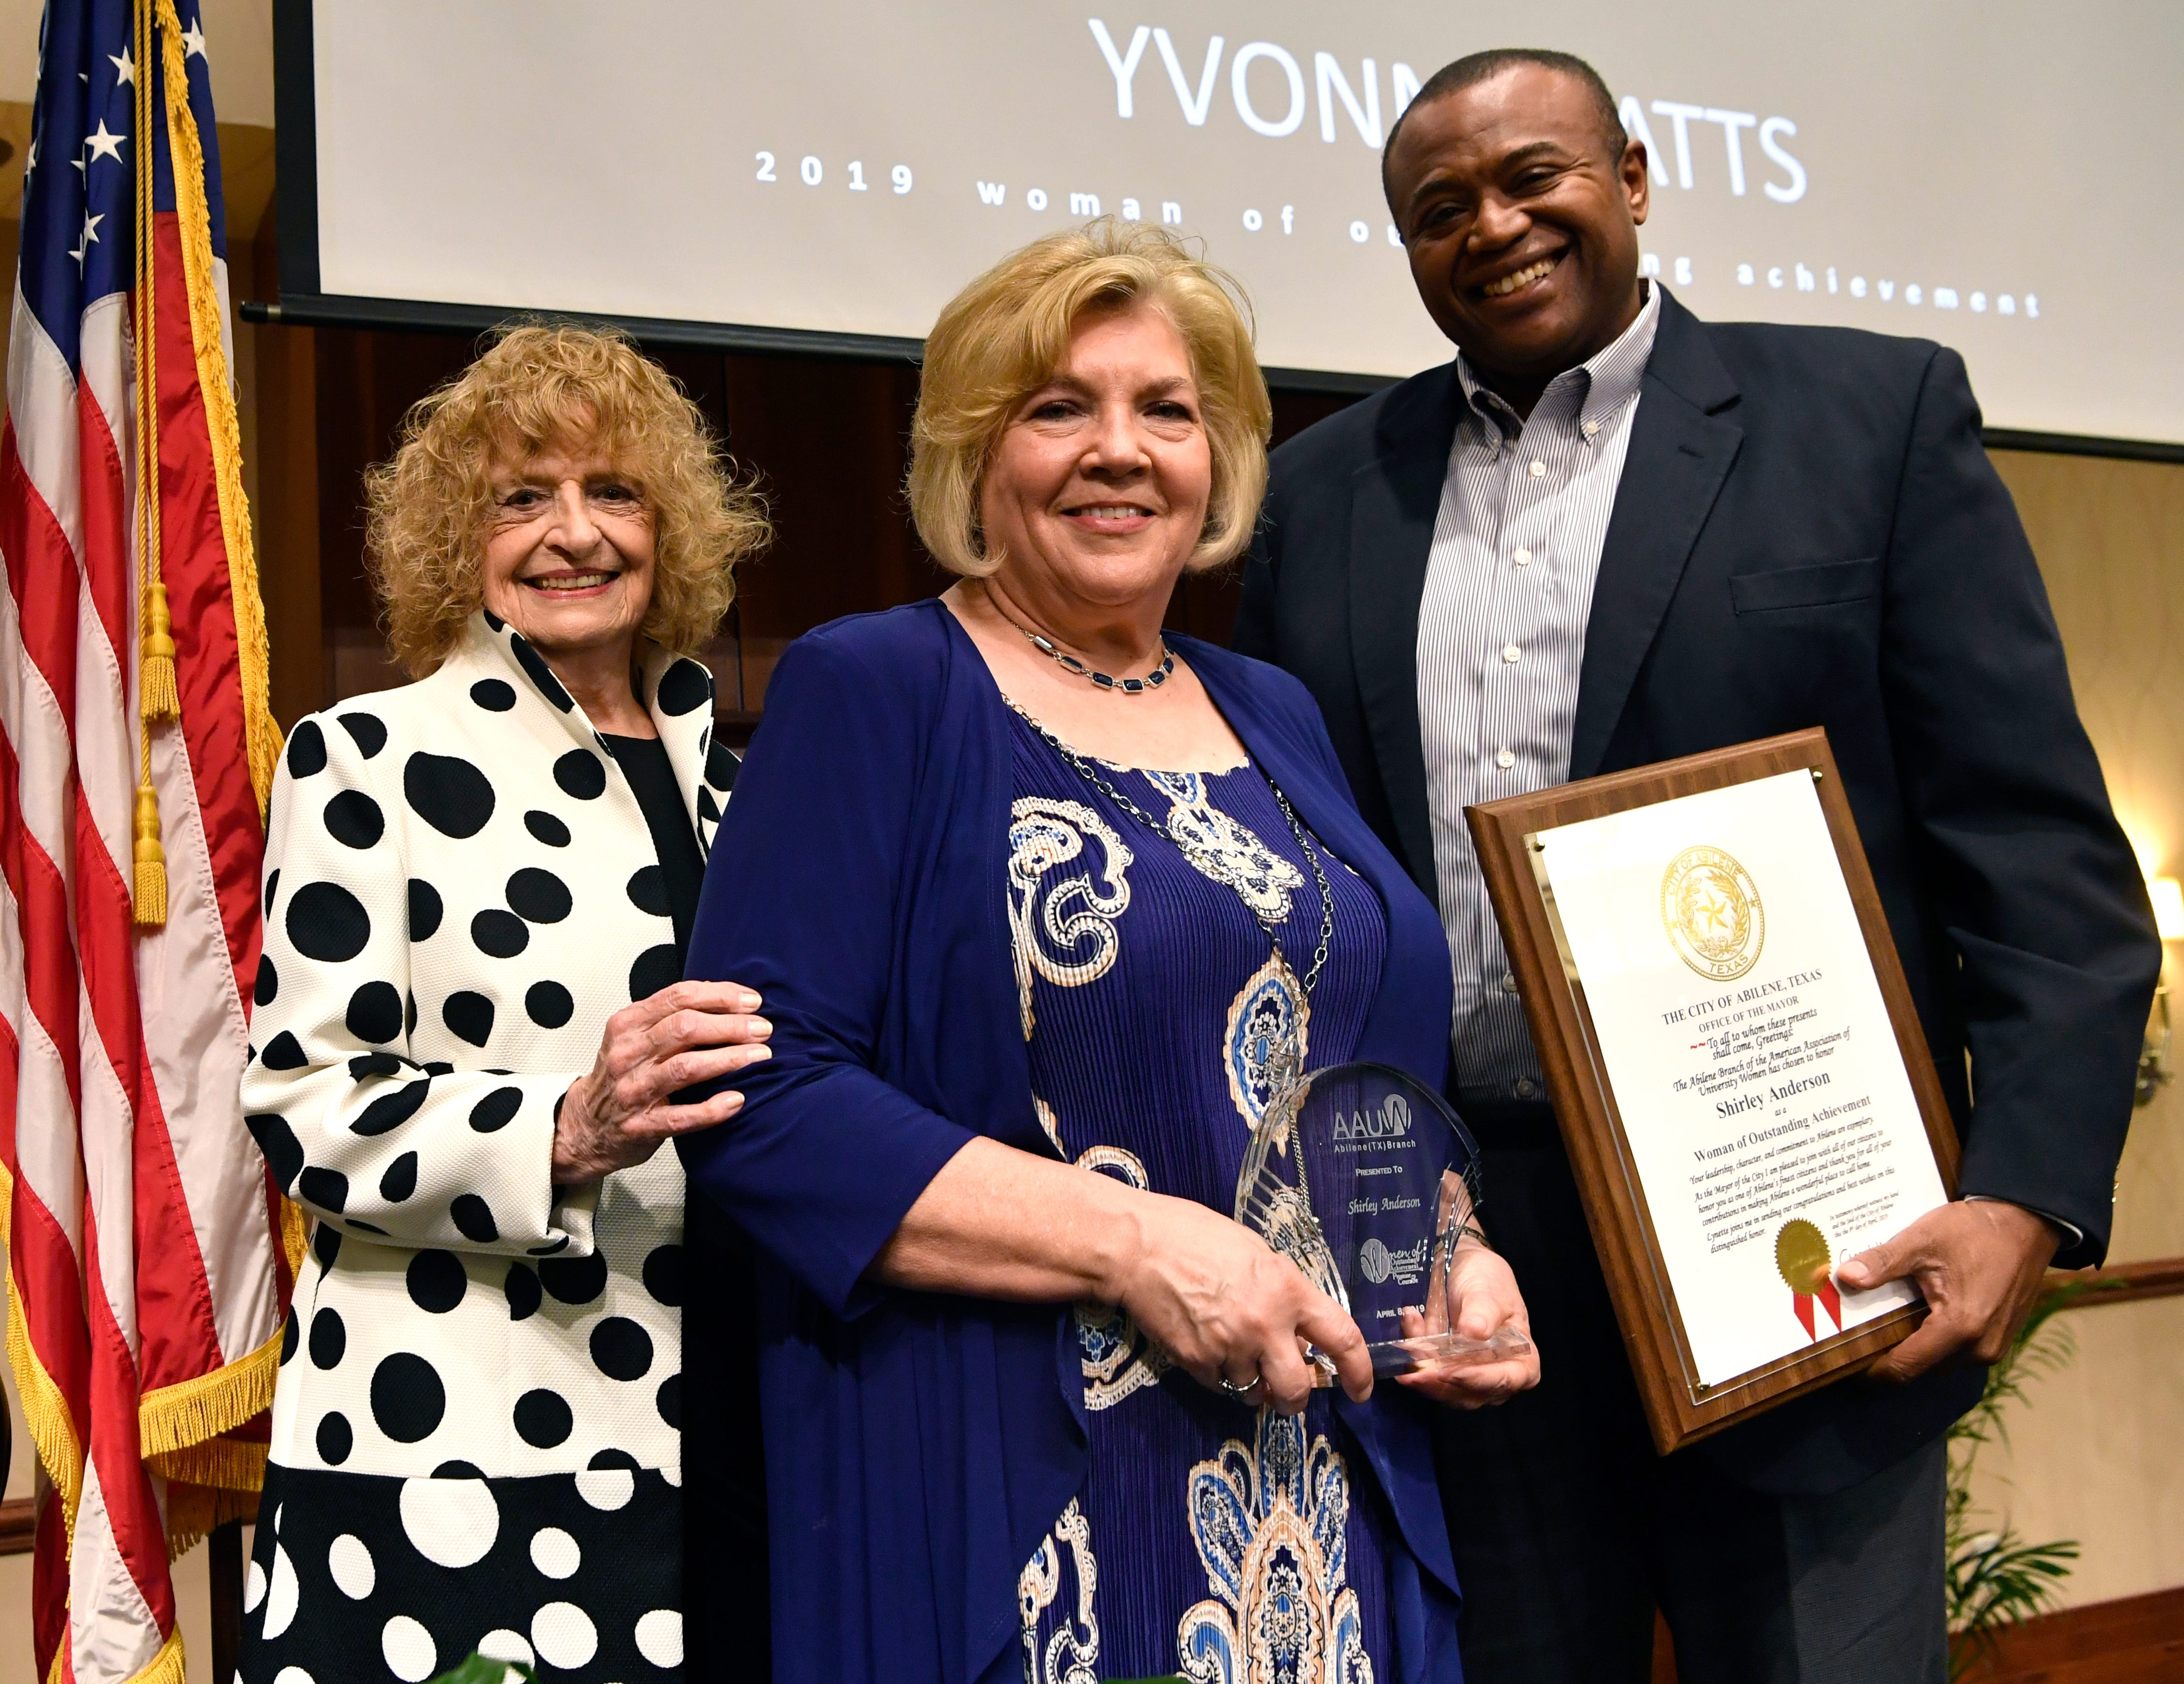 Shirley Anderson (center) was one of the women honored at Monday's 10th annual Women of Outstanding Achievement/Women of Promise & Courage Scholarship Award Luncheon at Abilene Christian University, Beside her are Martha Kiel and Mayor Anthony Williams.